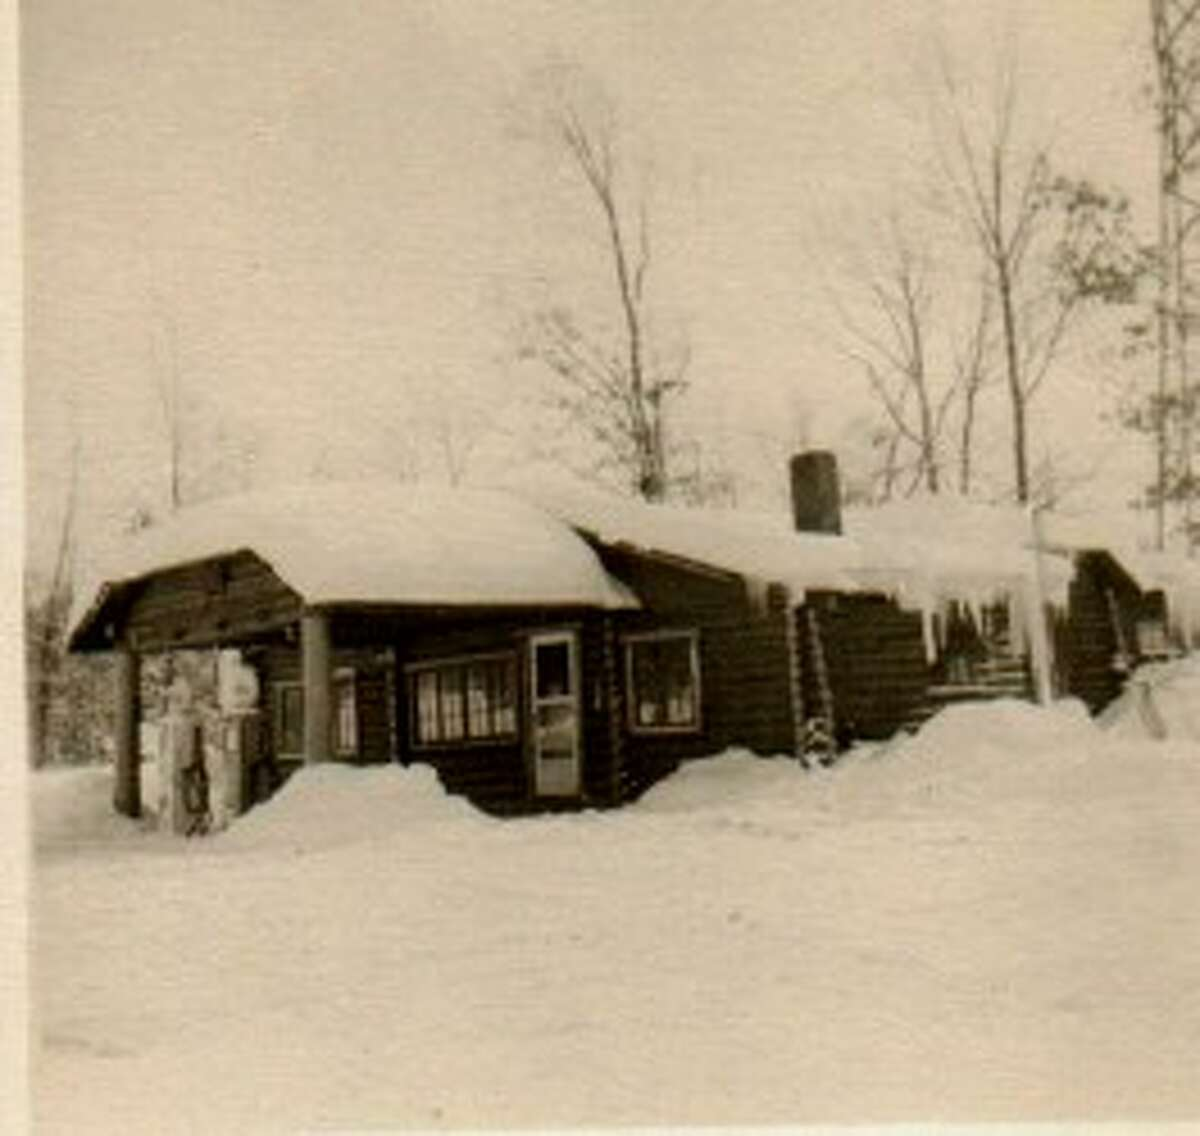 Until it burned in the 1980s, the White Star Tavern was a popular stop at the intersection of M-55 and Skocelas Road in Manistee County. (Courtesy Photo/Manistee County Historical Museum)